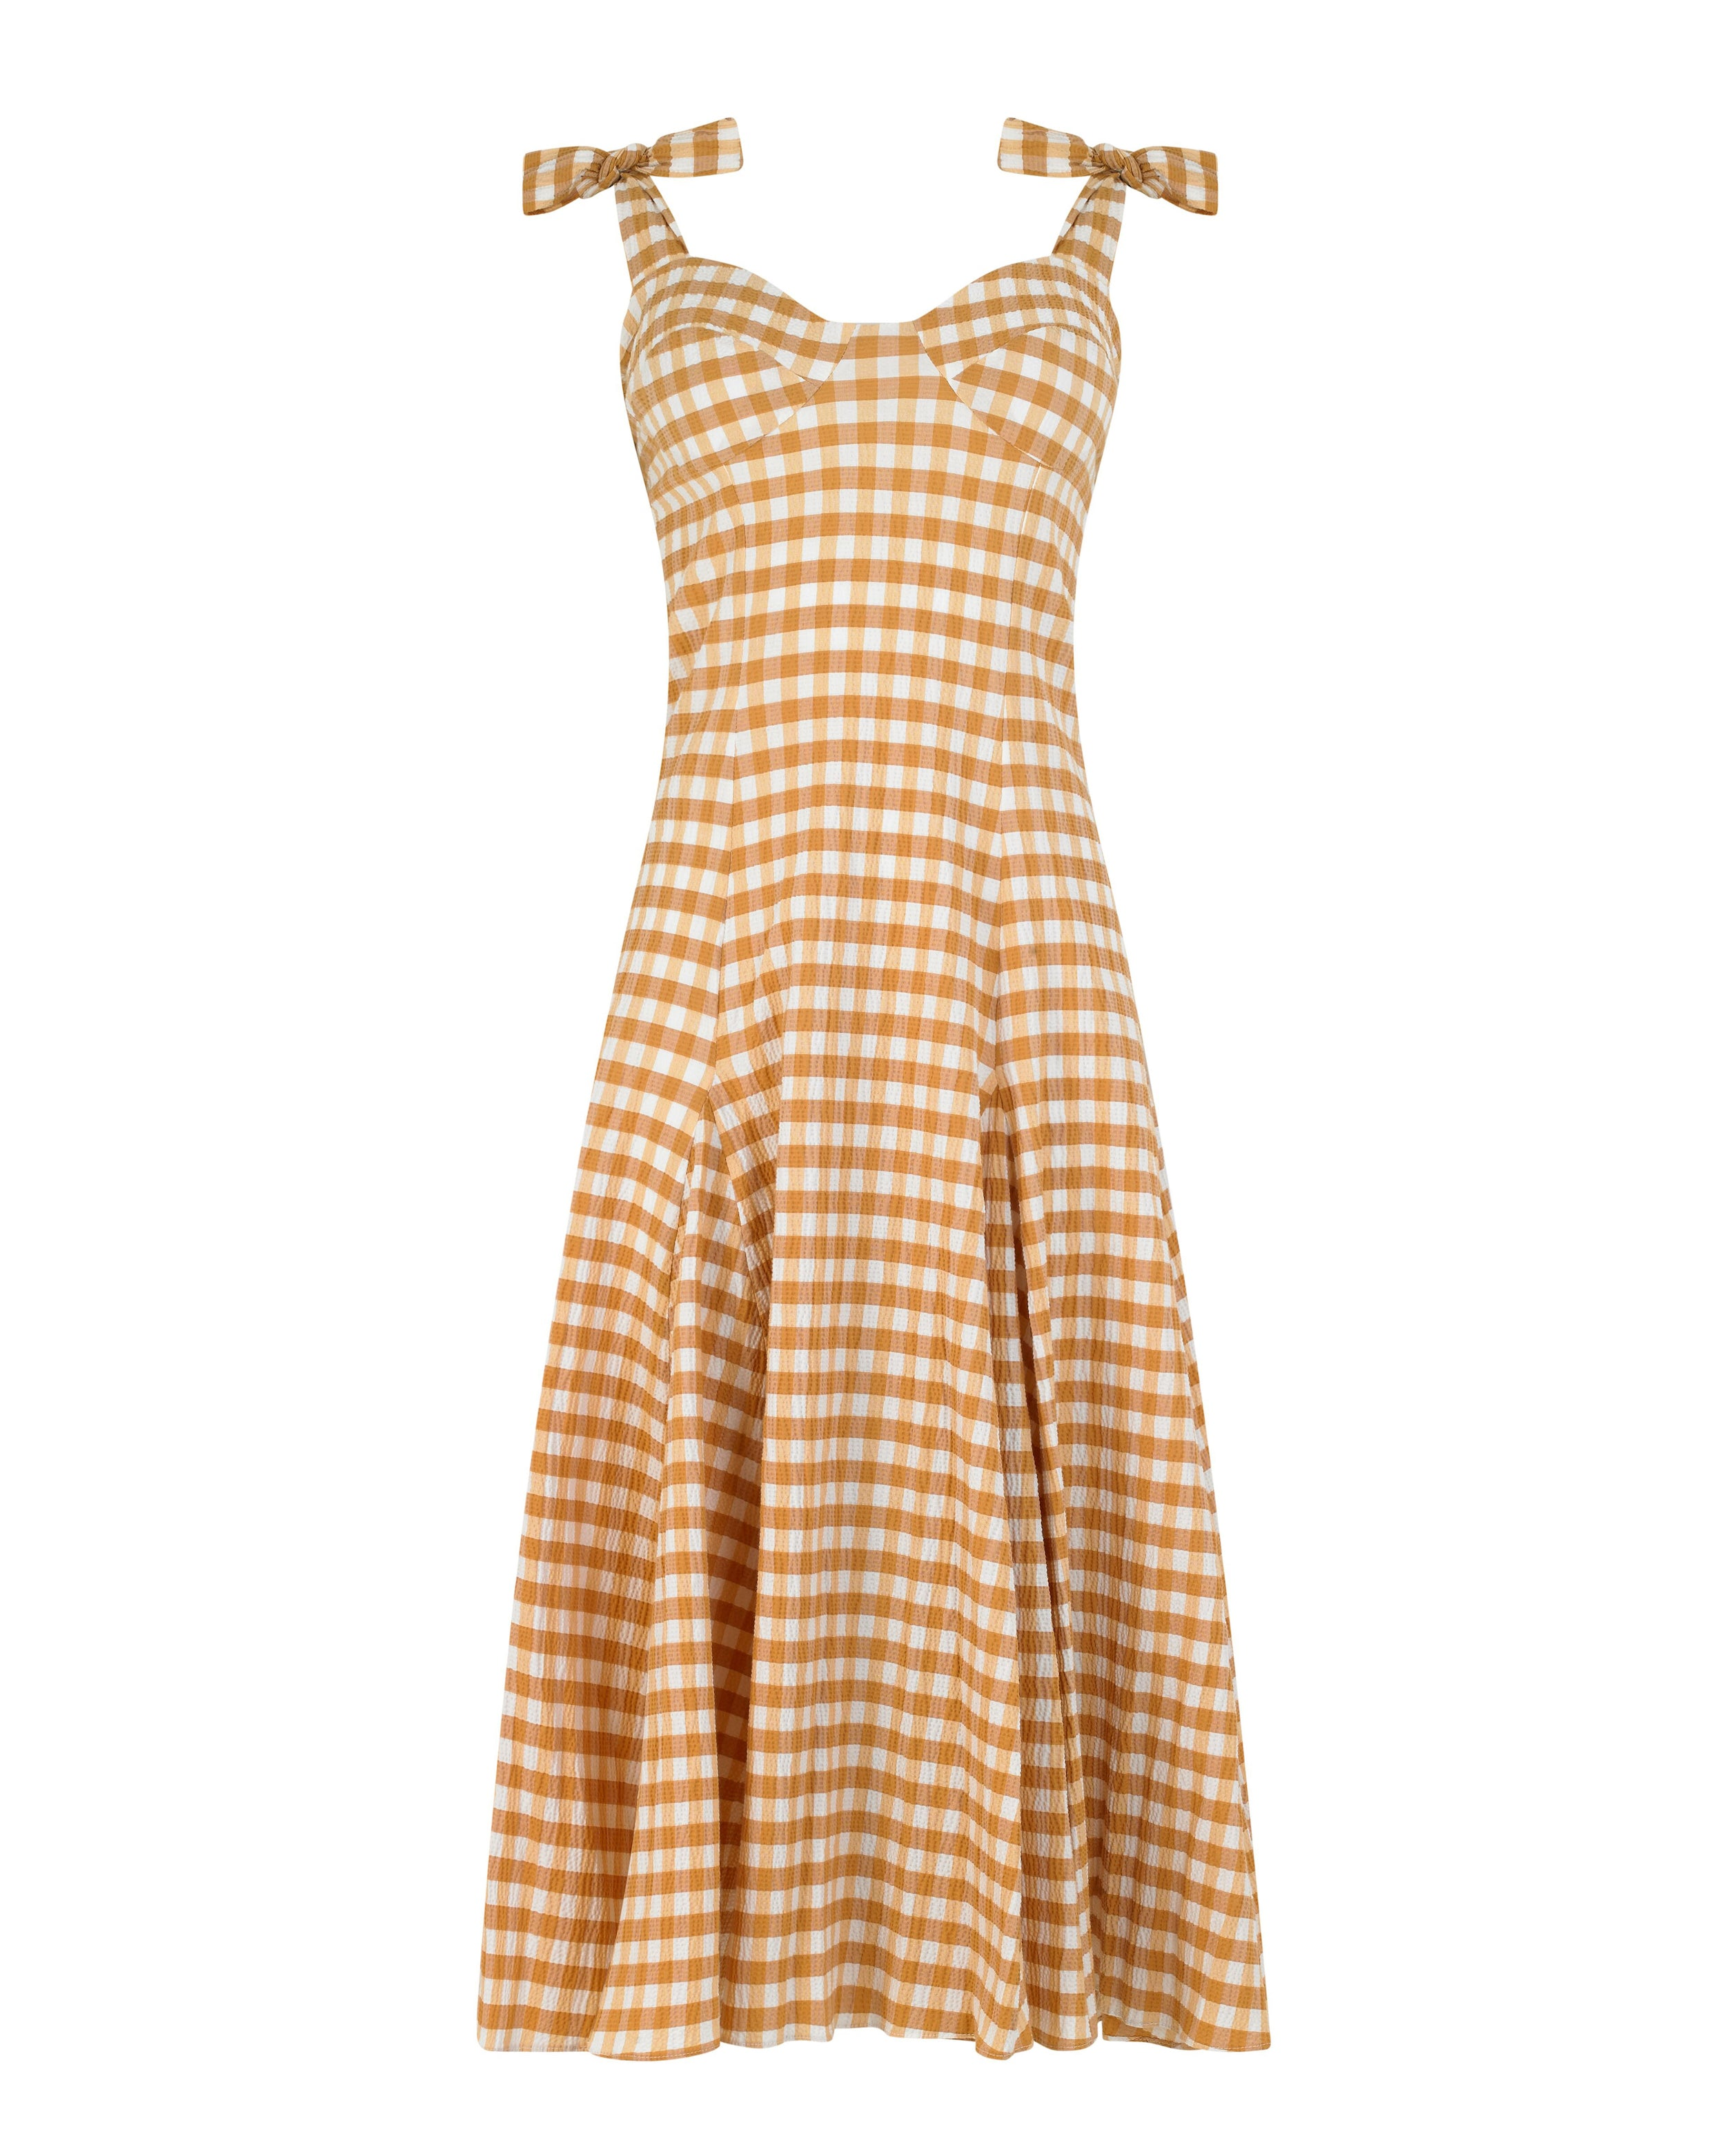 Mona Dress in Sand Tropez